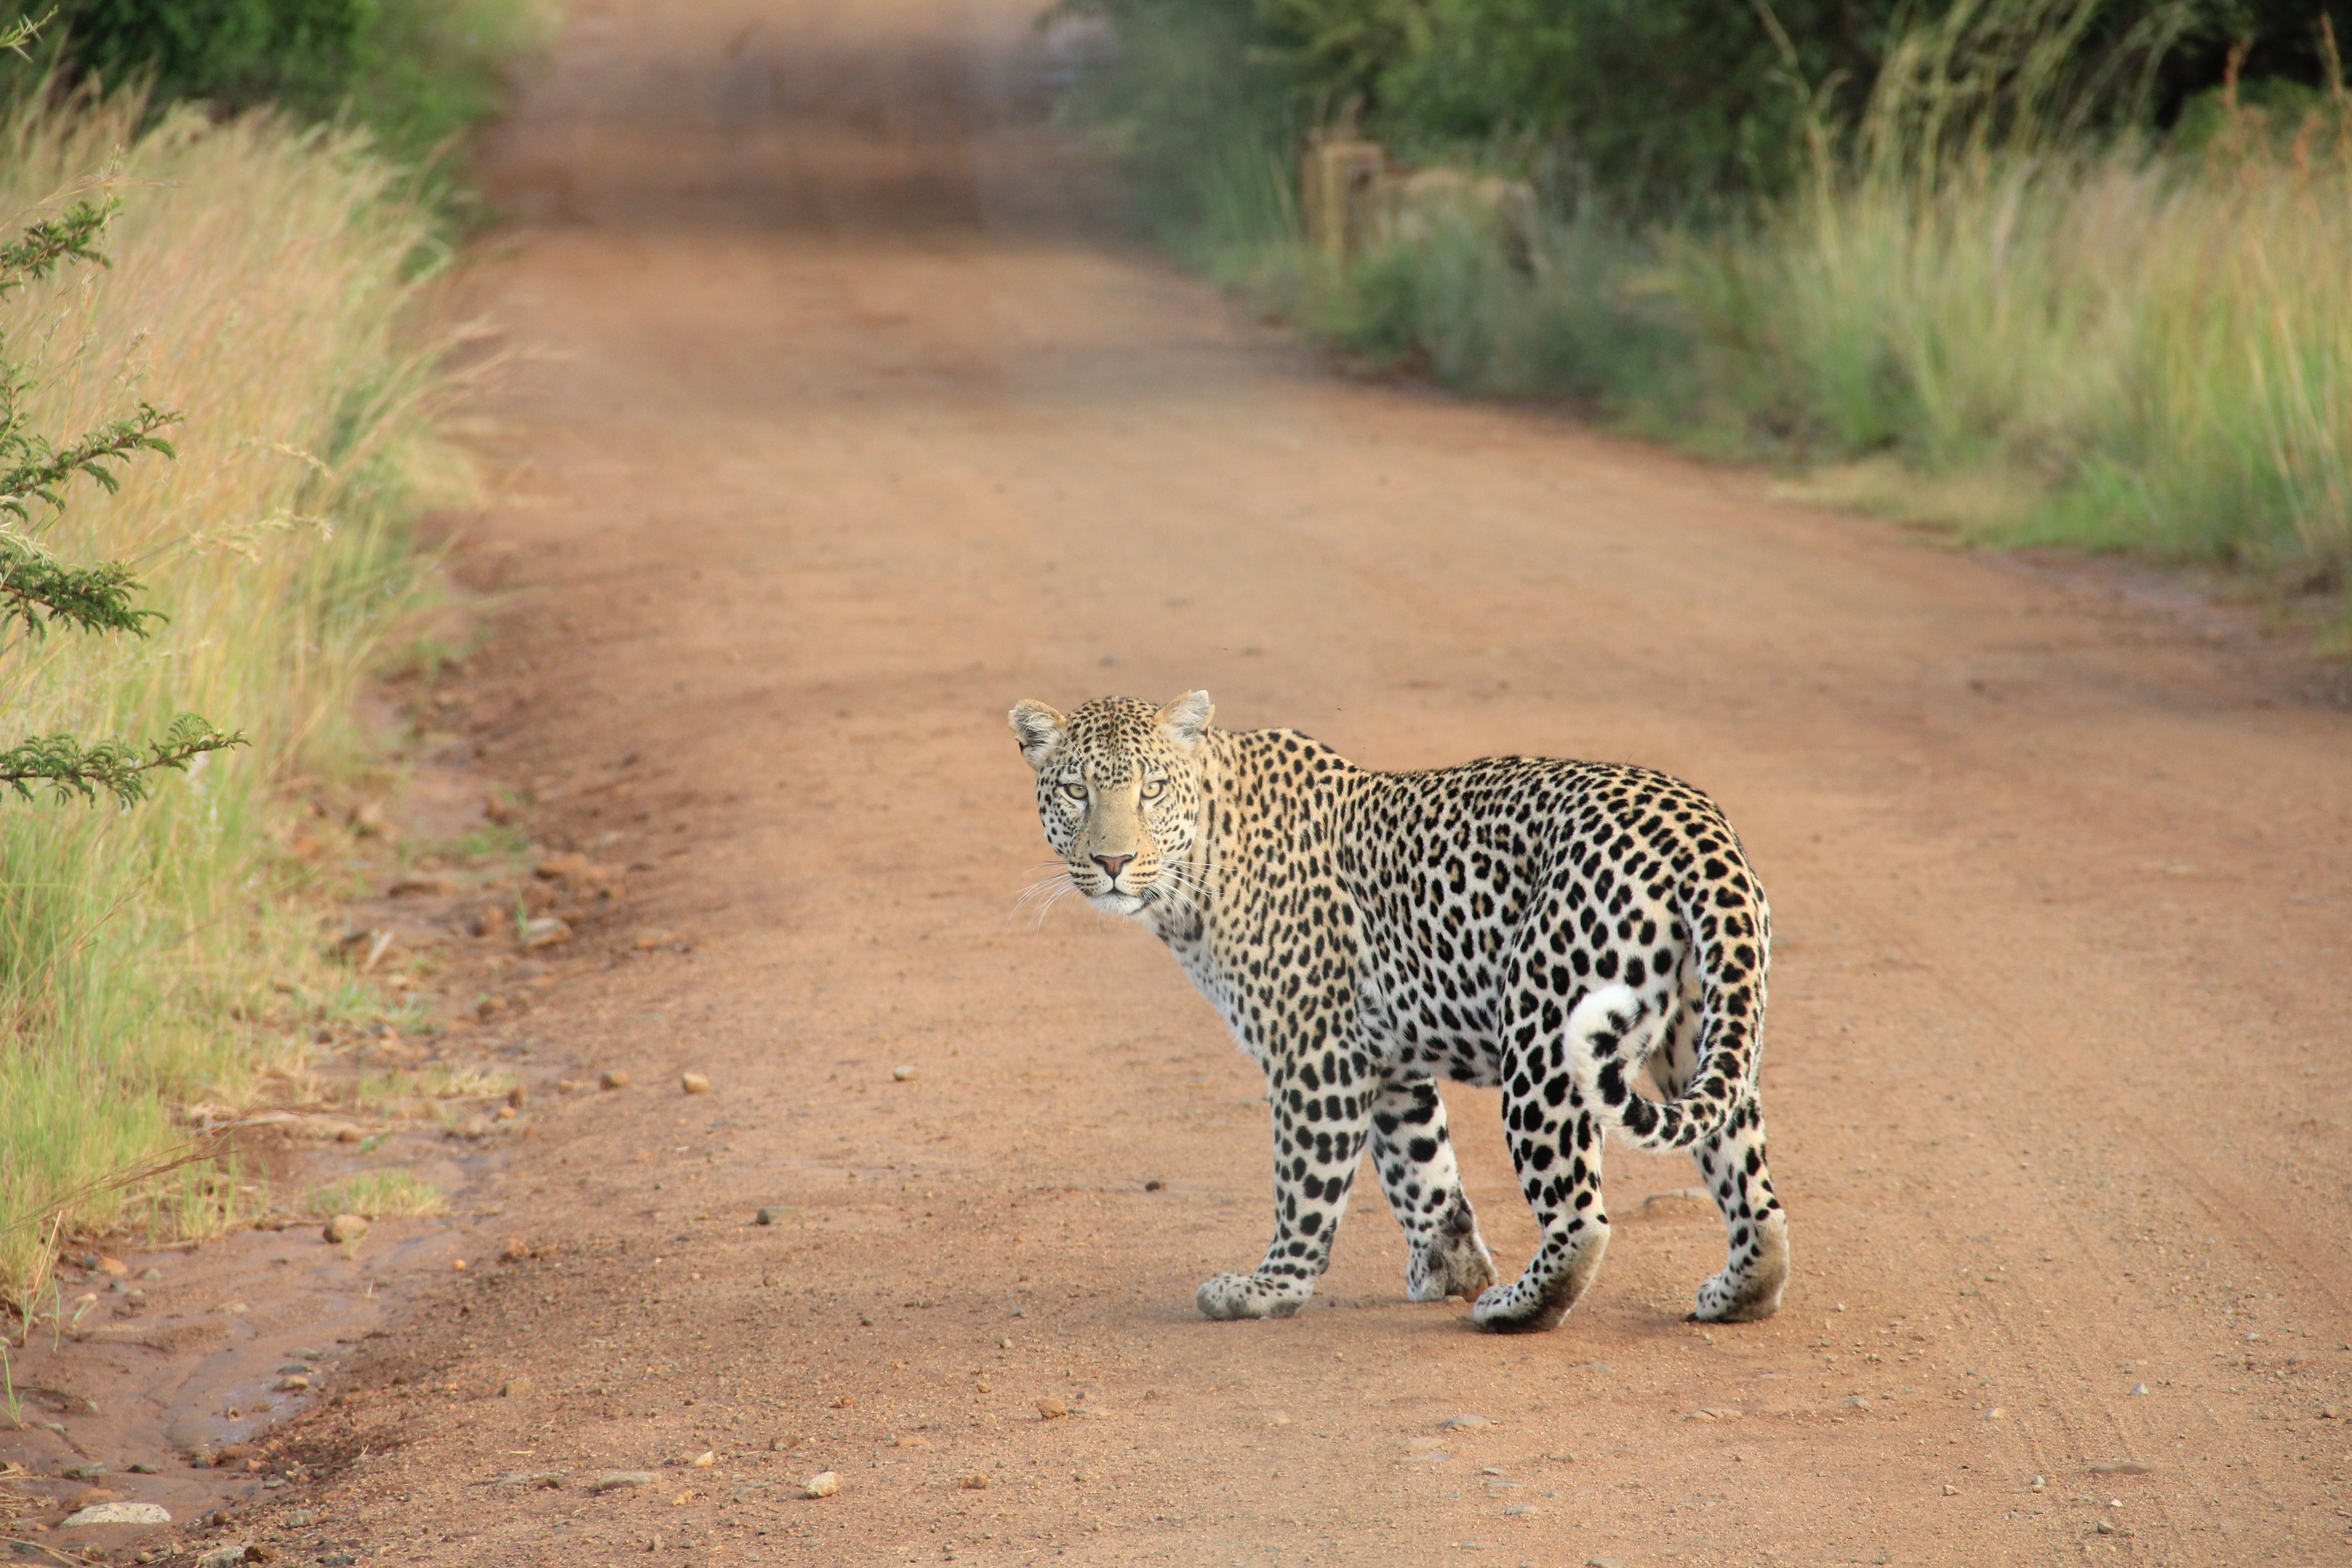 A leopard looking back at the camera on a dirt path